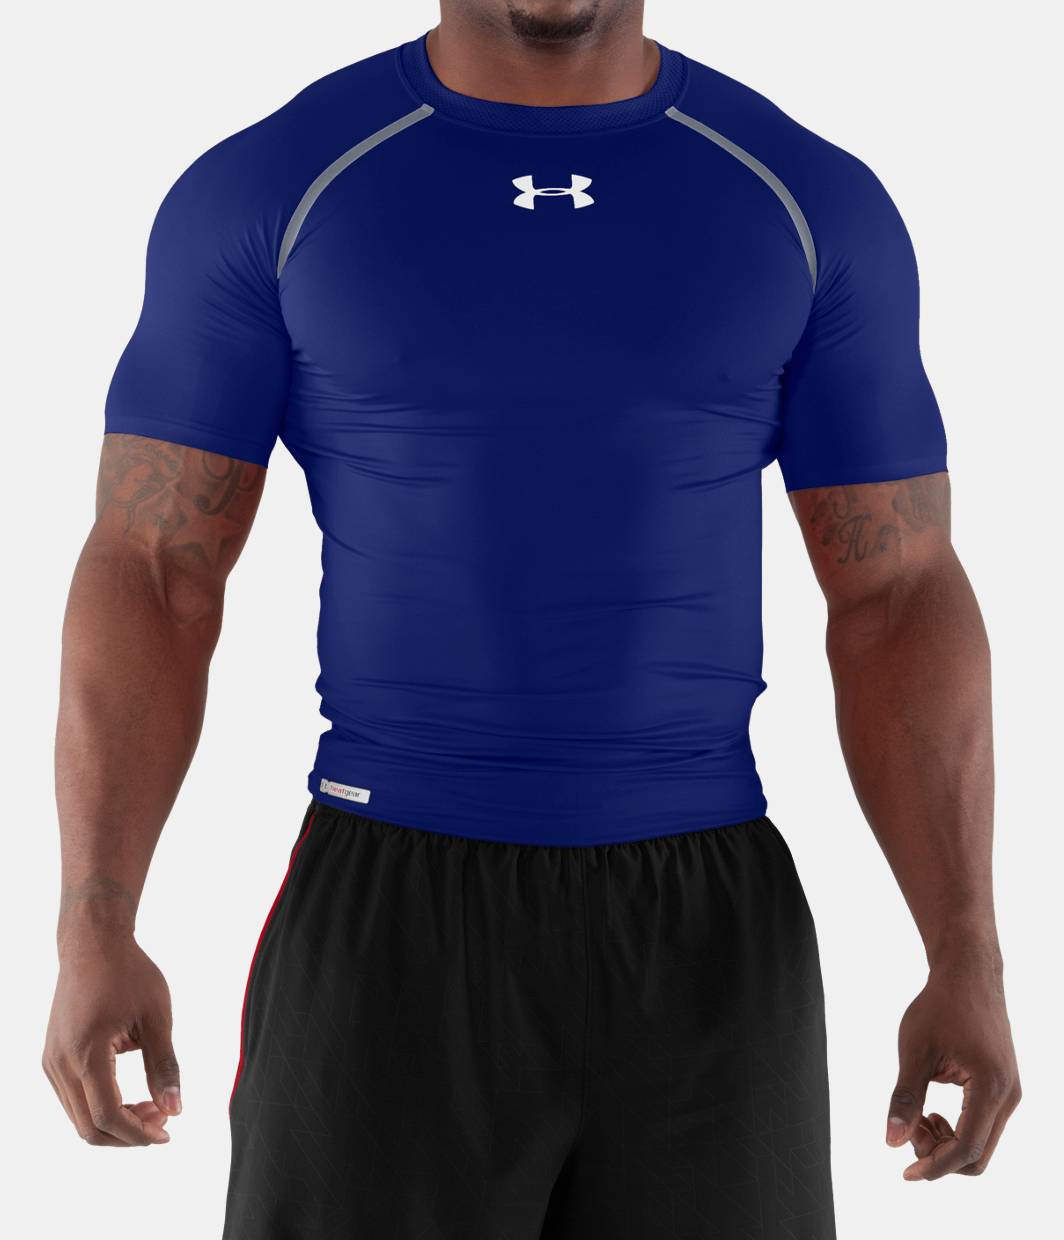 Under Armour Men/'s UA HeatGear® Dynasty Vented Compression Shirt